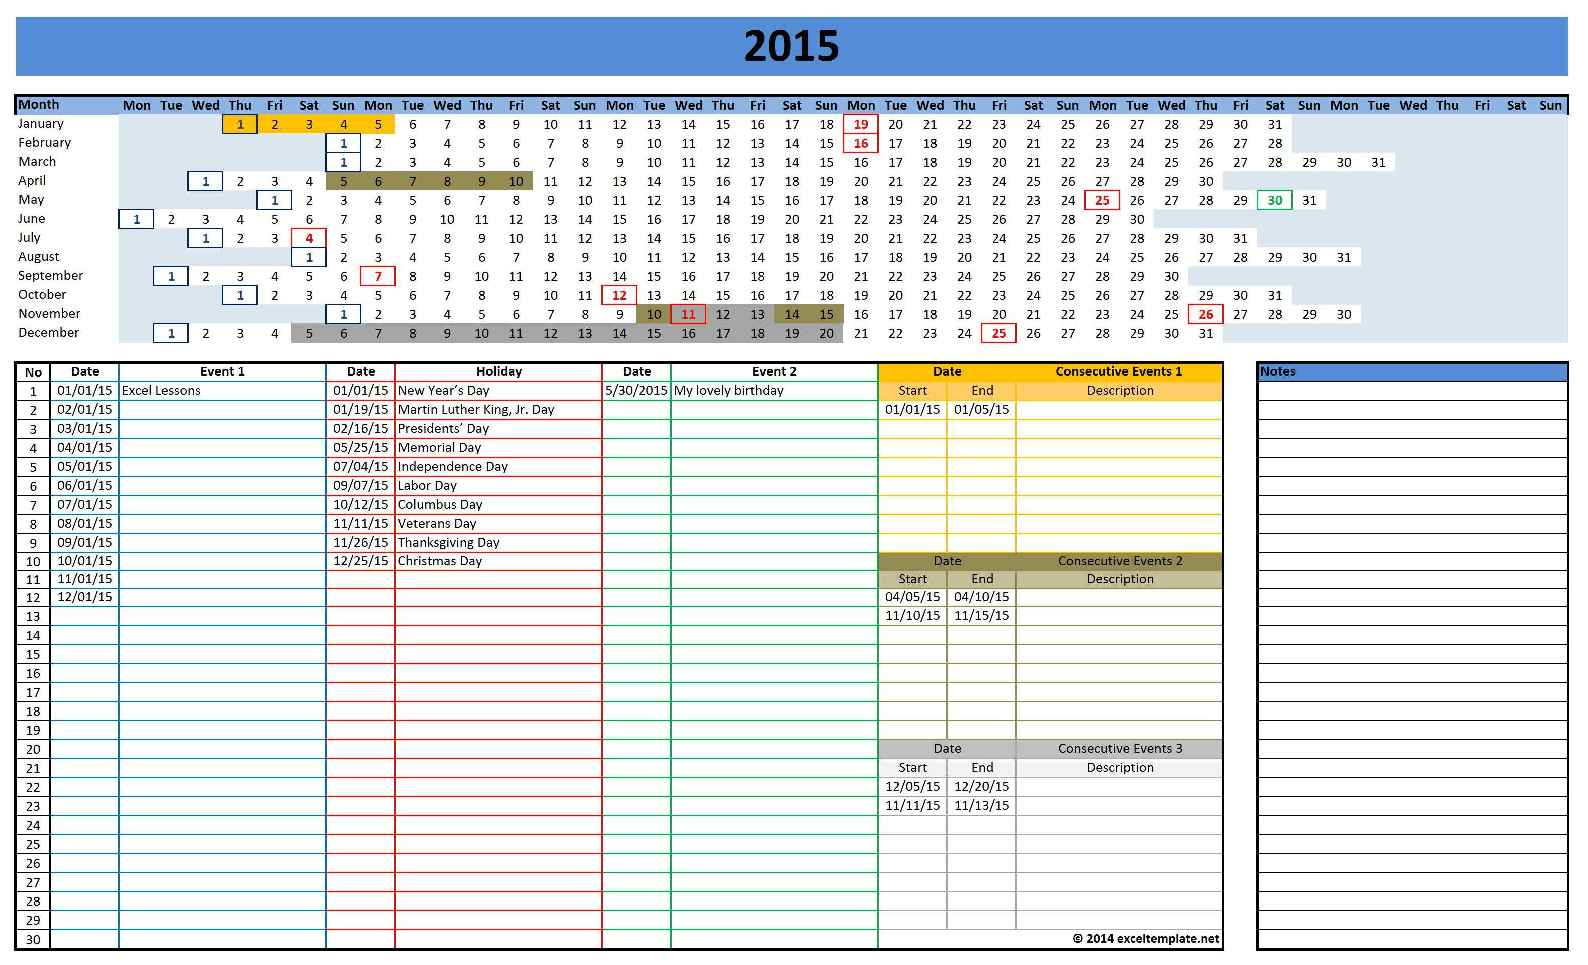 2015 calendar templates microsoft and open office templates for Ms office calendar template 2015